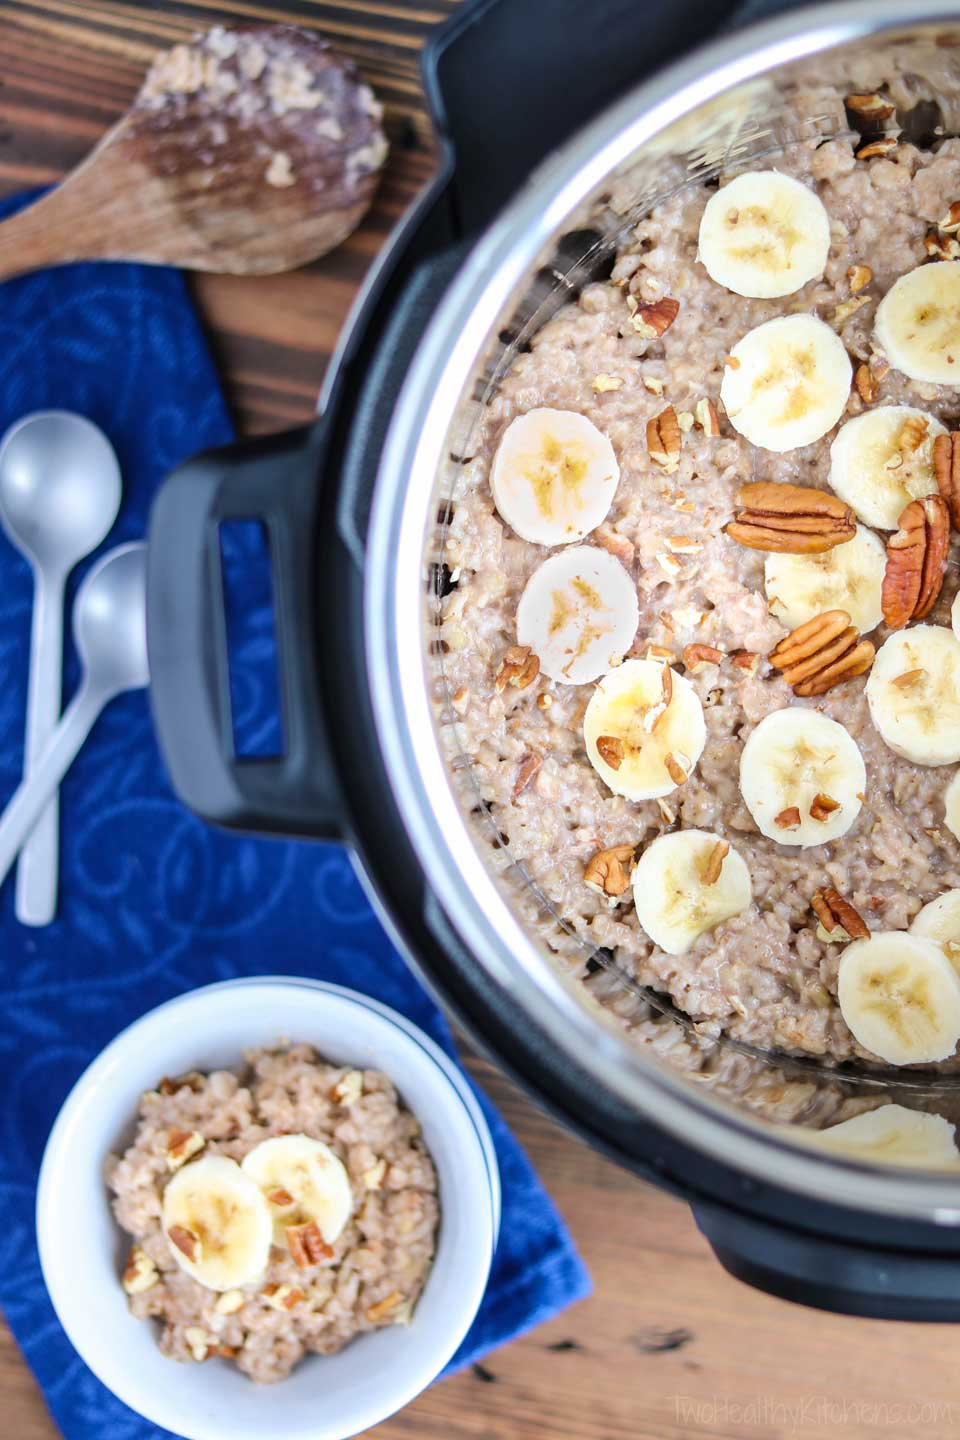 I've made oatmeal in my Instant Pot the last two mornings in a row! It's so easy! As I was learning how to use an Instant Pot, this was one of the first types of recipes I tackled. Also, great for steel cut oats that take so much longer on the stovetop!